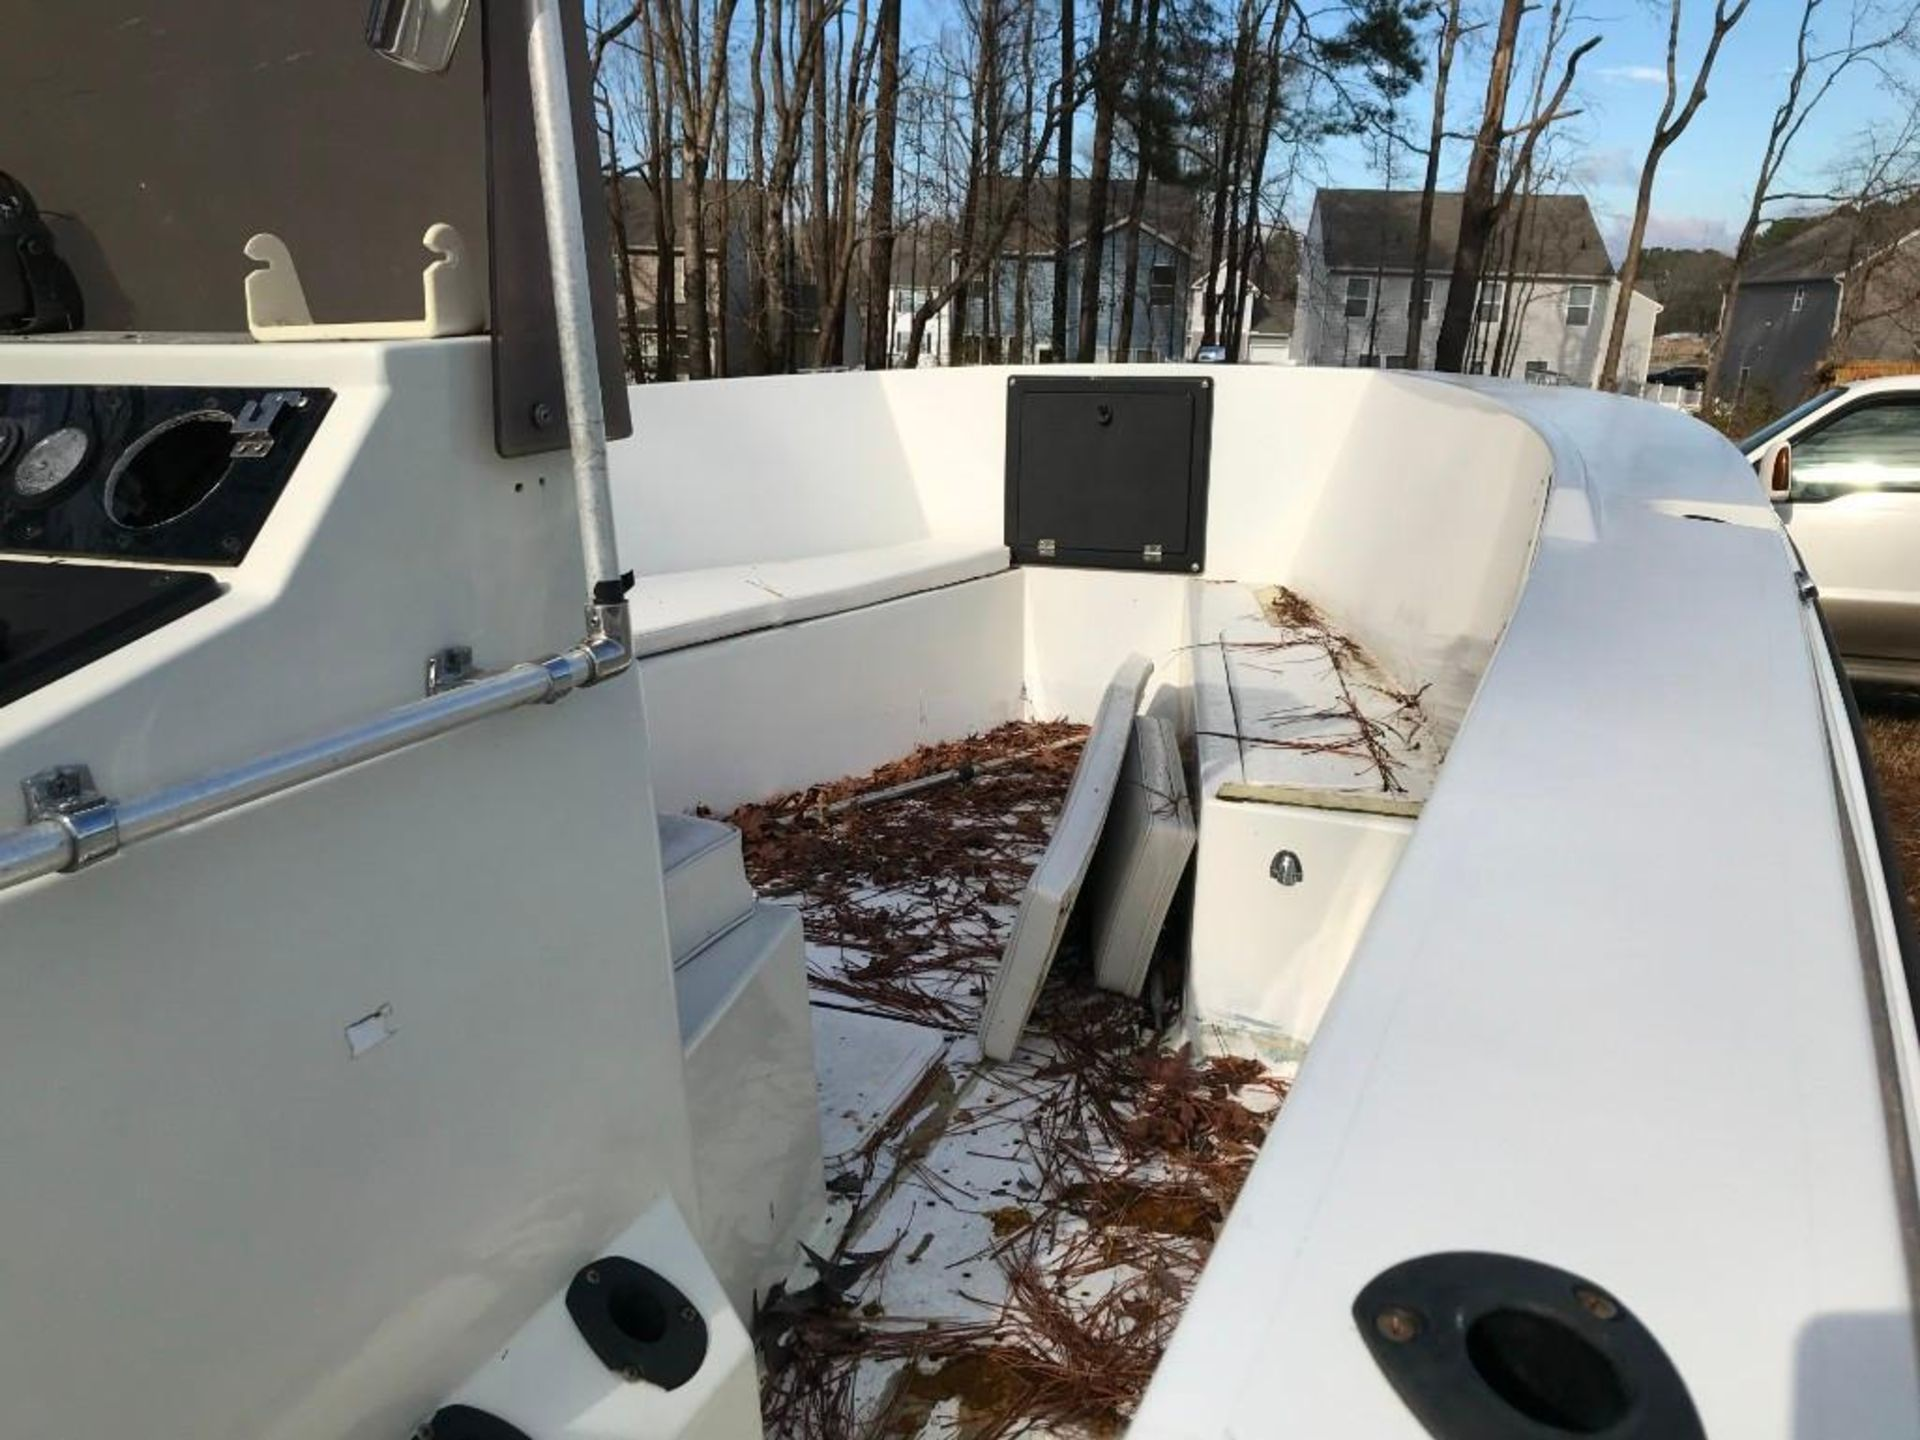 1972 WELLCRAFT F20 BOAT HULL - Image 8 of 8